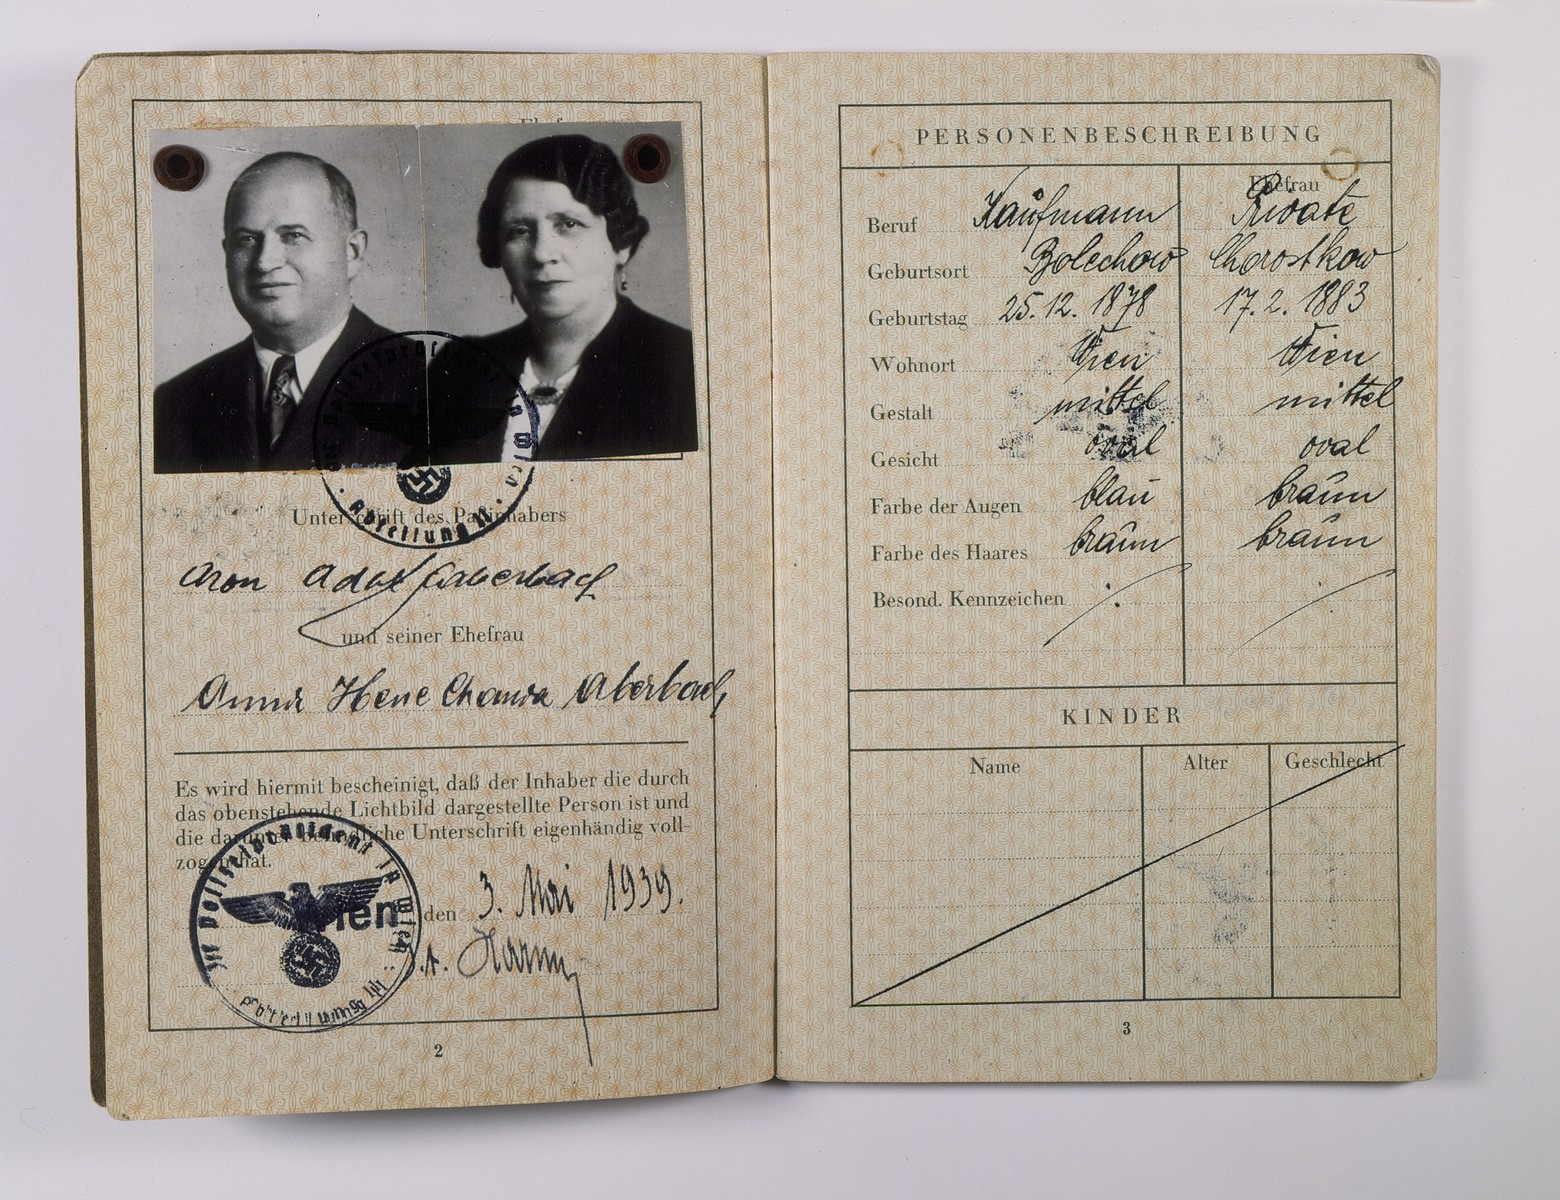 German passport issued to Viennese Jews, Adolf [Aron] Aberbach and his wife, Anna.